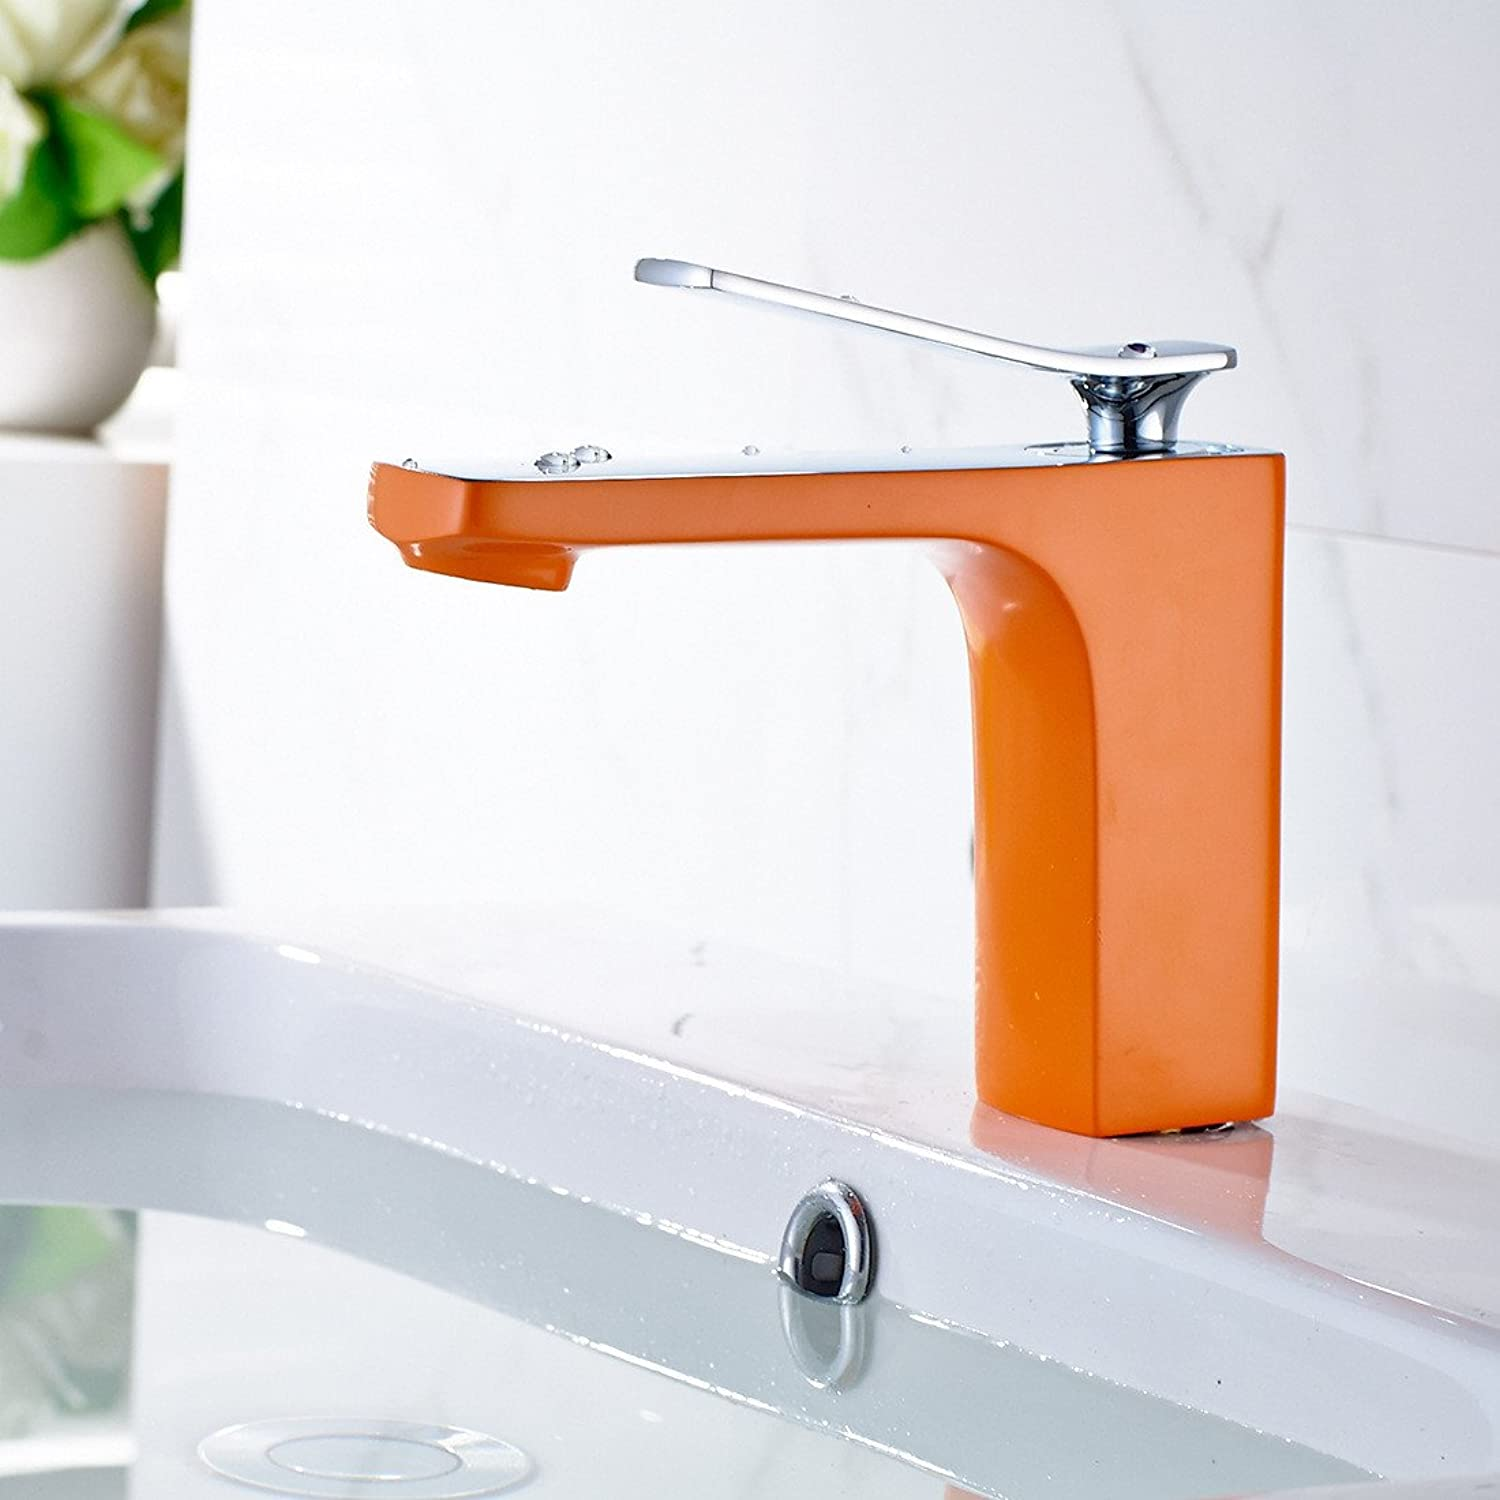 LaLF Copper Faucet Painting Plating Faucet Single Handle Single Hole Bathroom Faucet Hot and Cold Basin Faucet